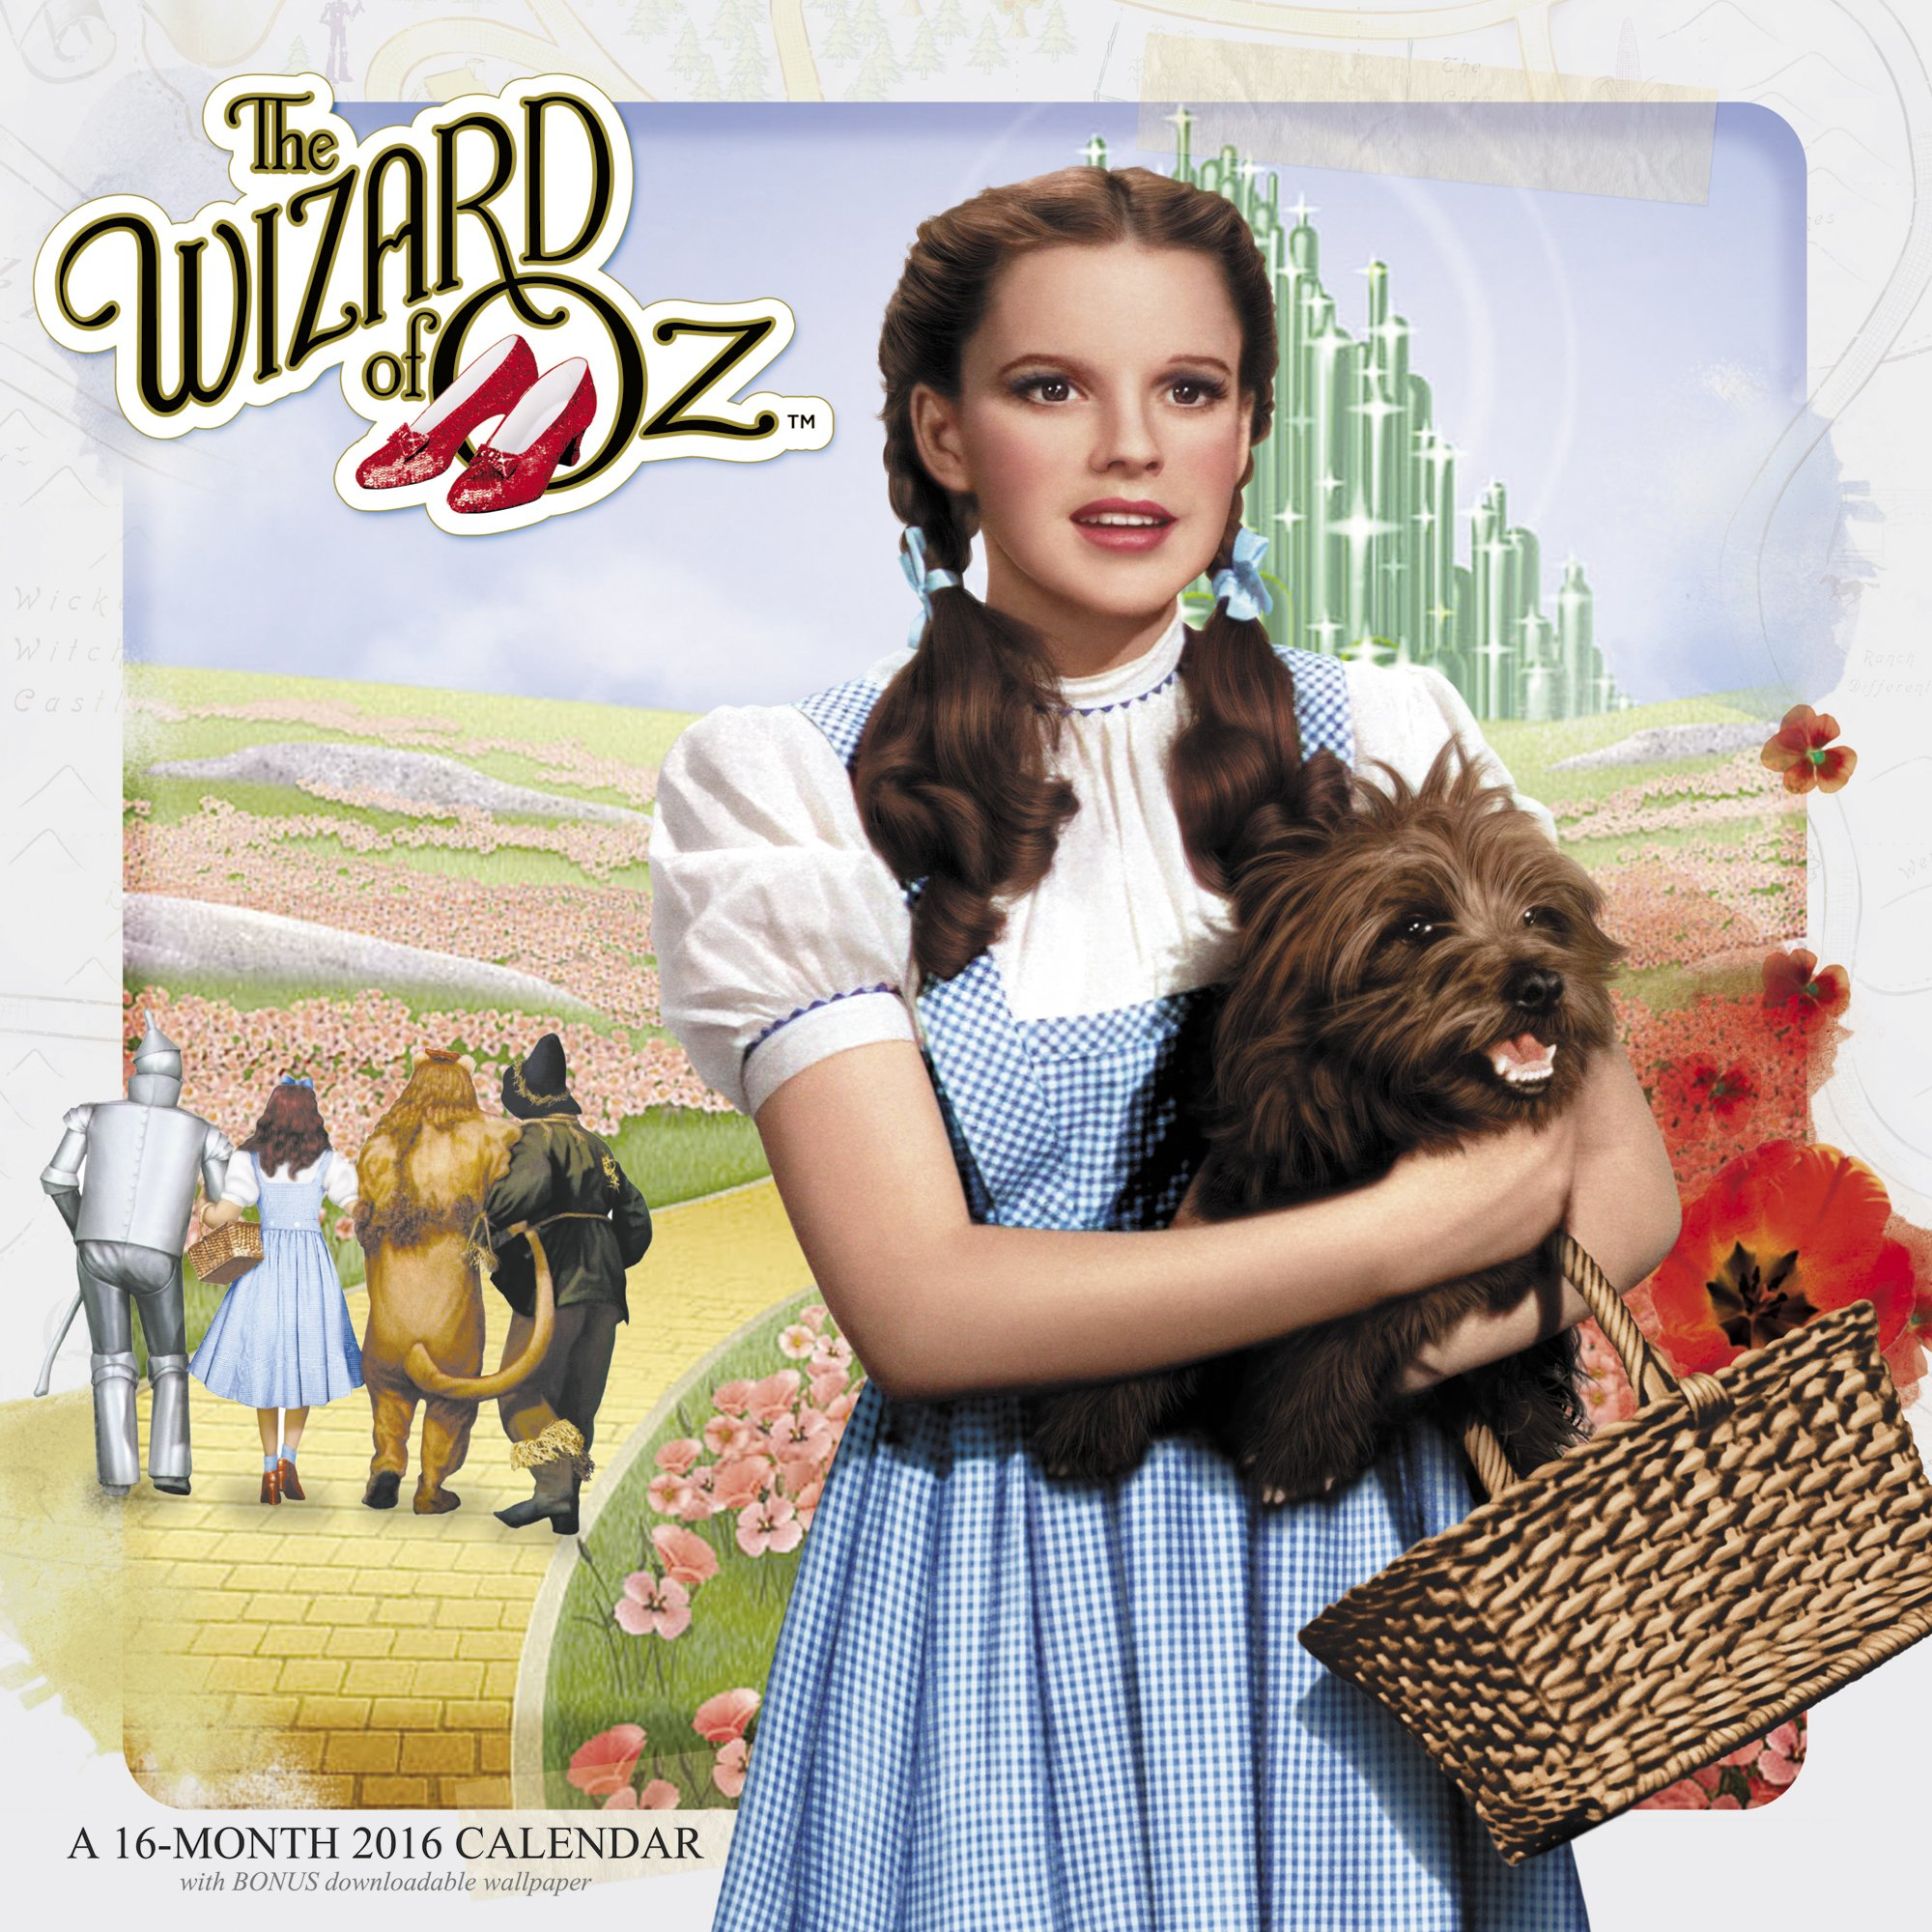 The Wizard Of Oz 2016 Calendar Free Downloadable Wallpaper